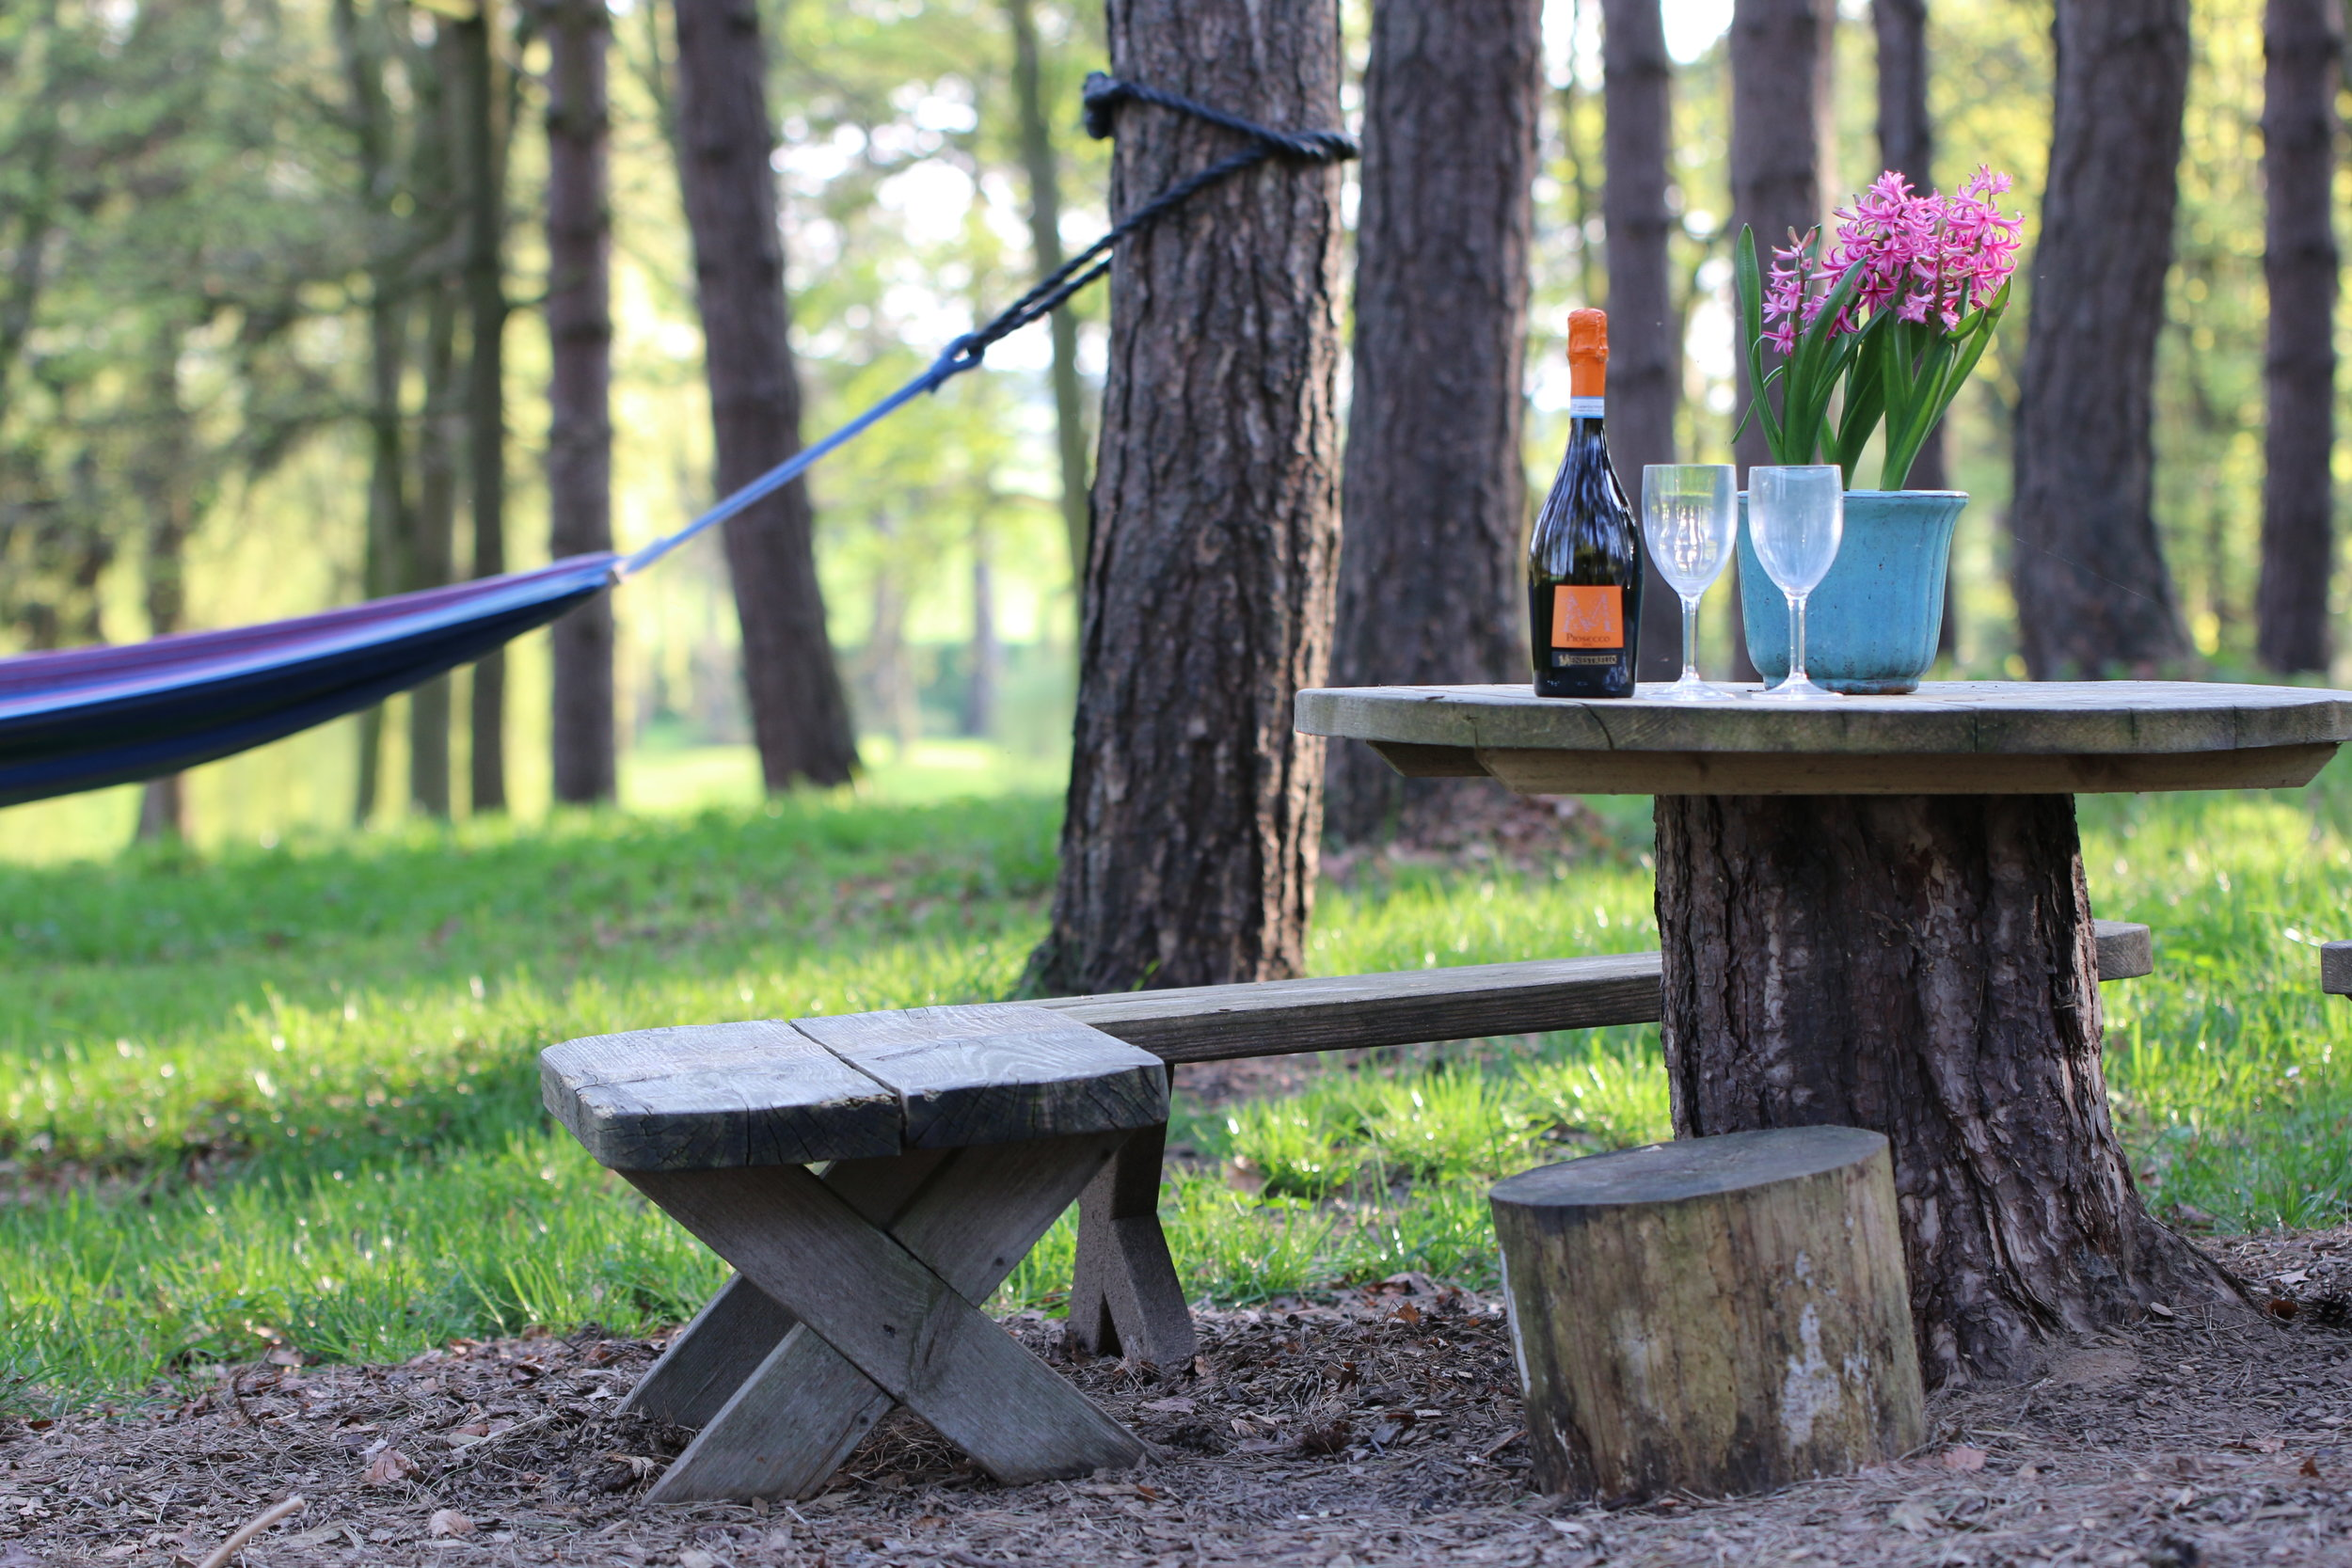 Sneak off and share a tipple in the woods